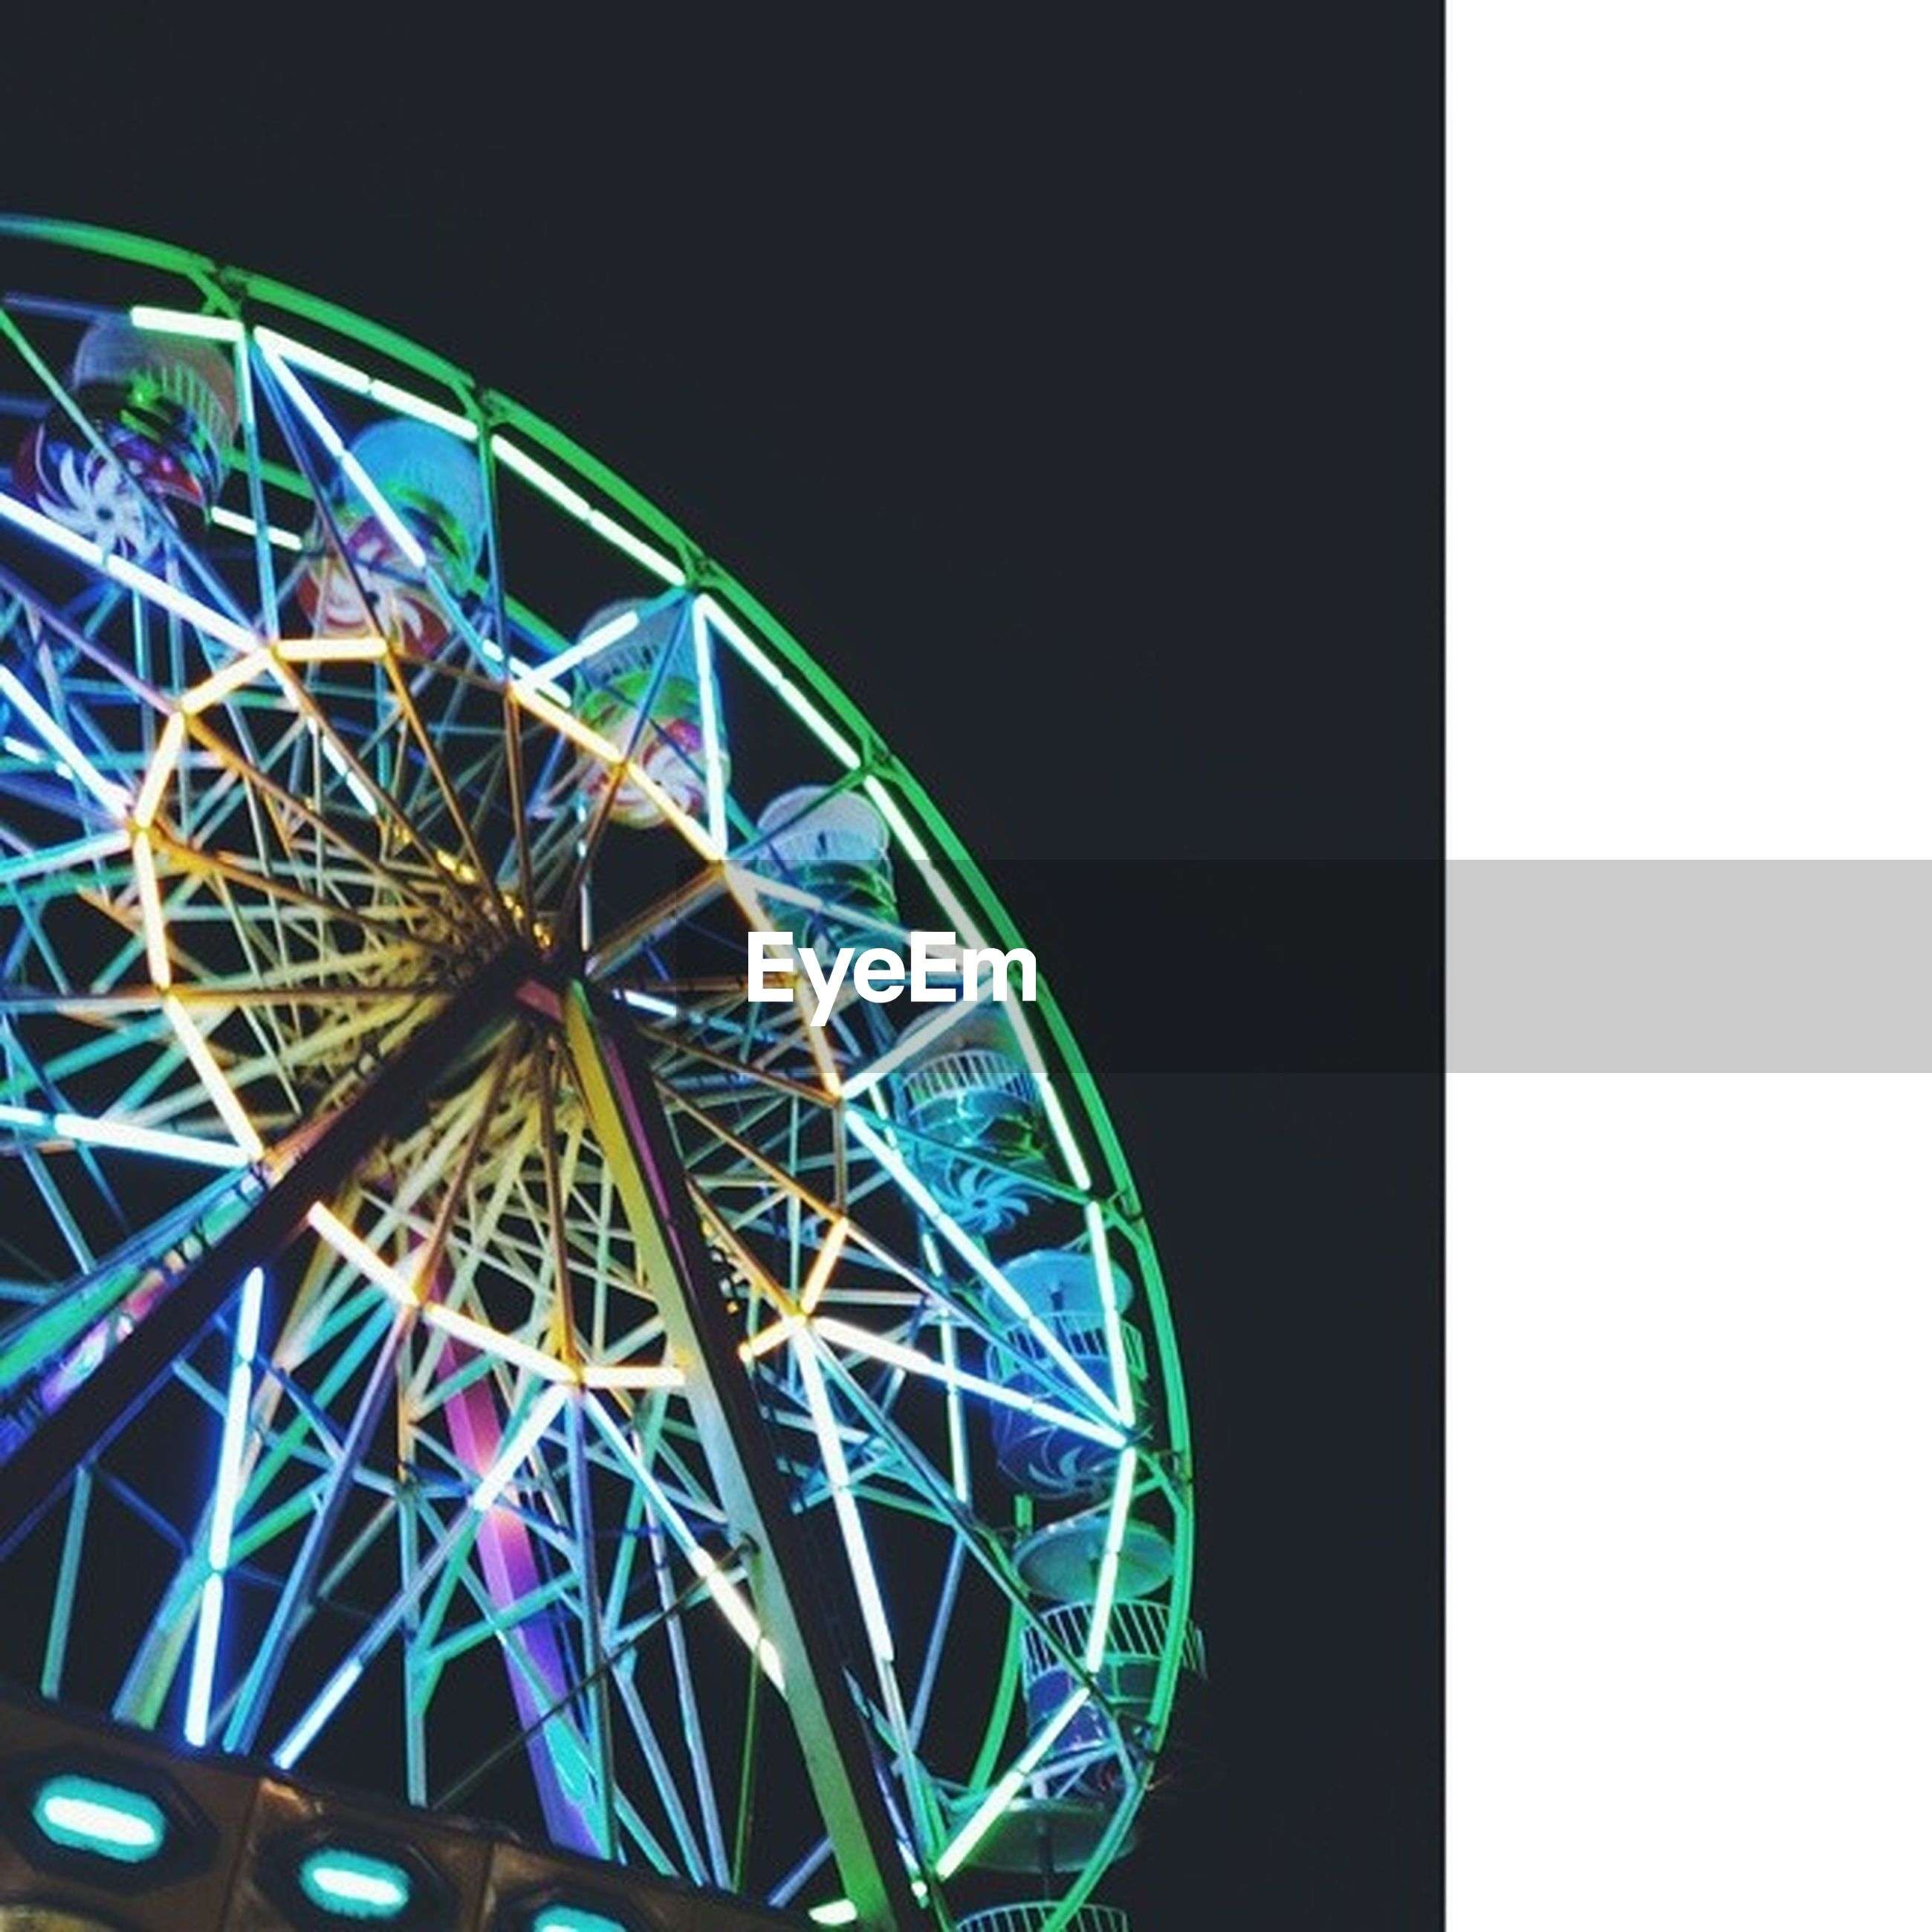 amusement park, ferris wheel, amusement park ride, arts culture and entertainment, clear sky, low angle view, illuminated, blue, copy space, circle, night, multi colored, built structure, fun, sky, architecture, outdoors, metal, no people, traveling carnival